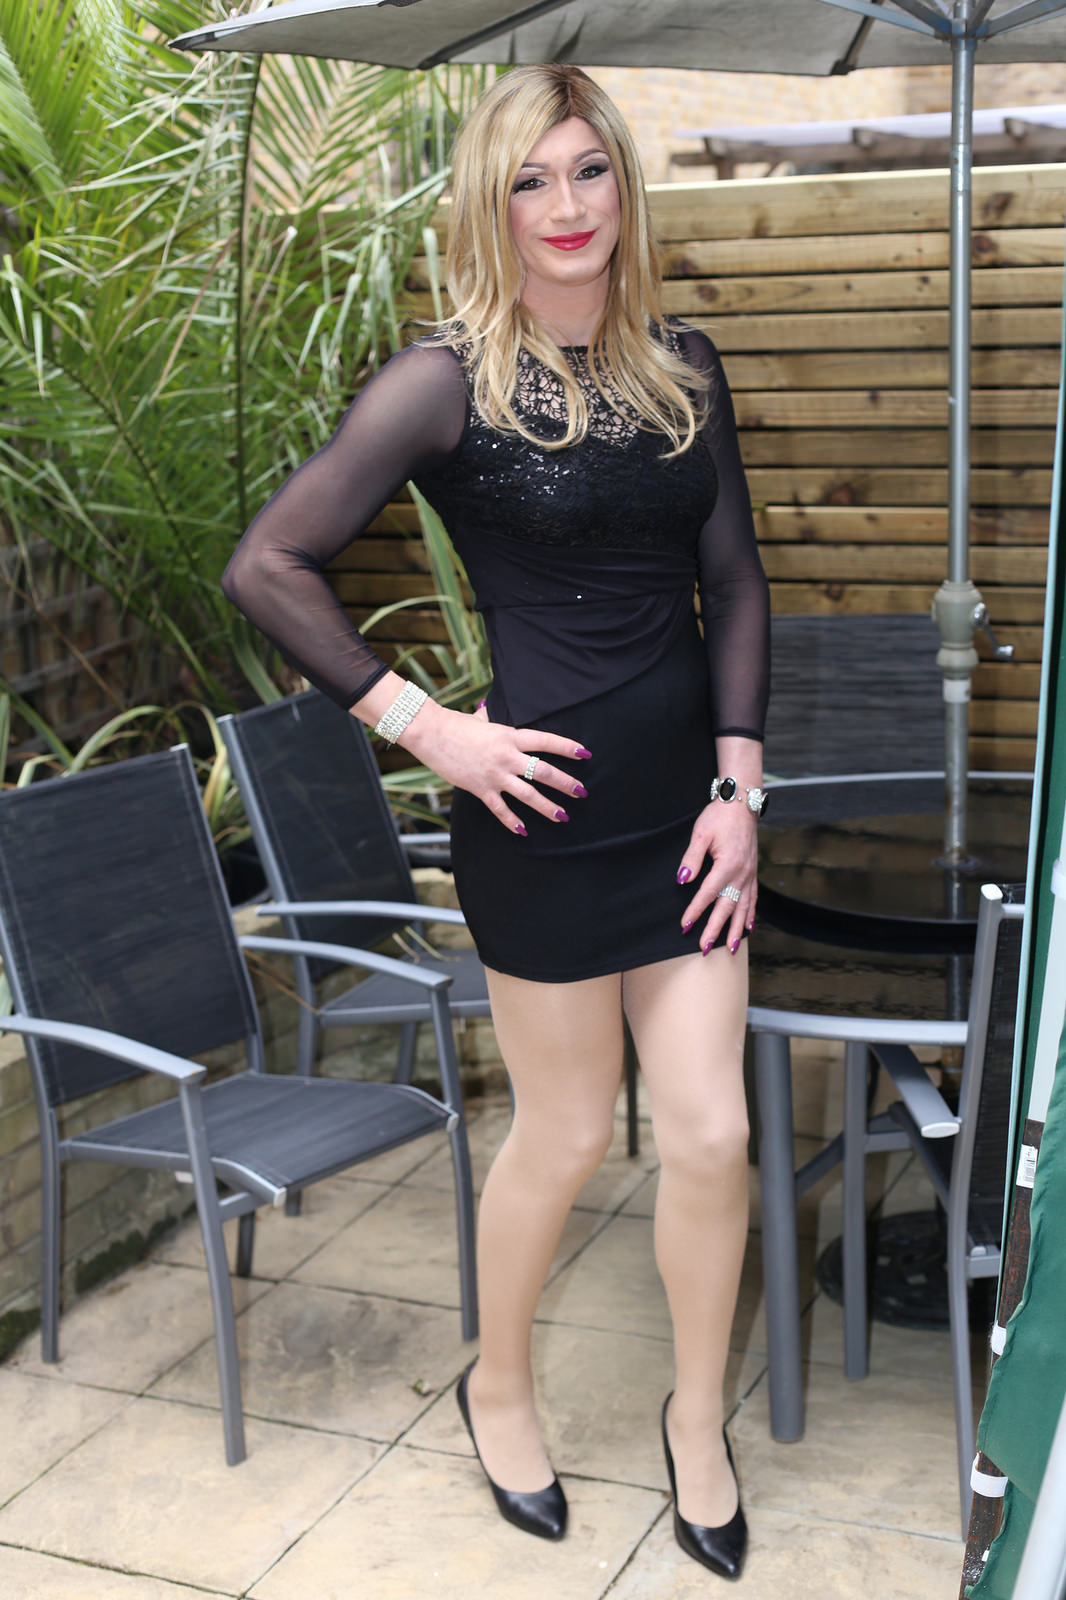 cougar women in vic Daily updated and free galleries of swingers, swinger sex.